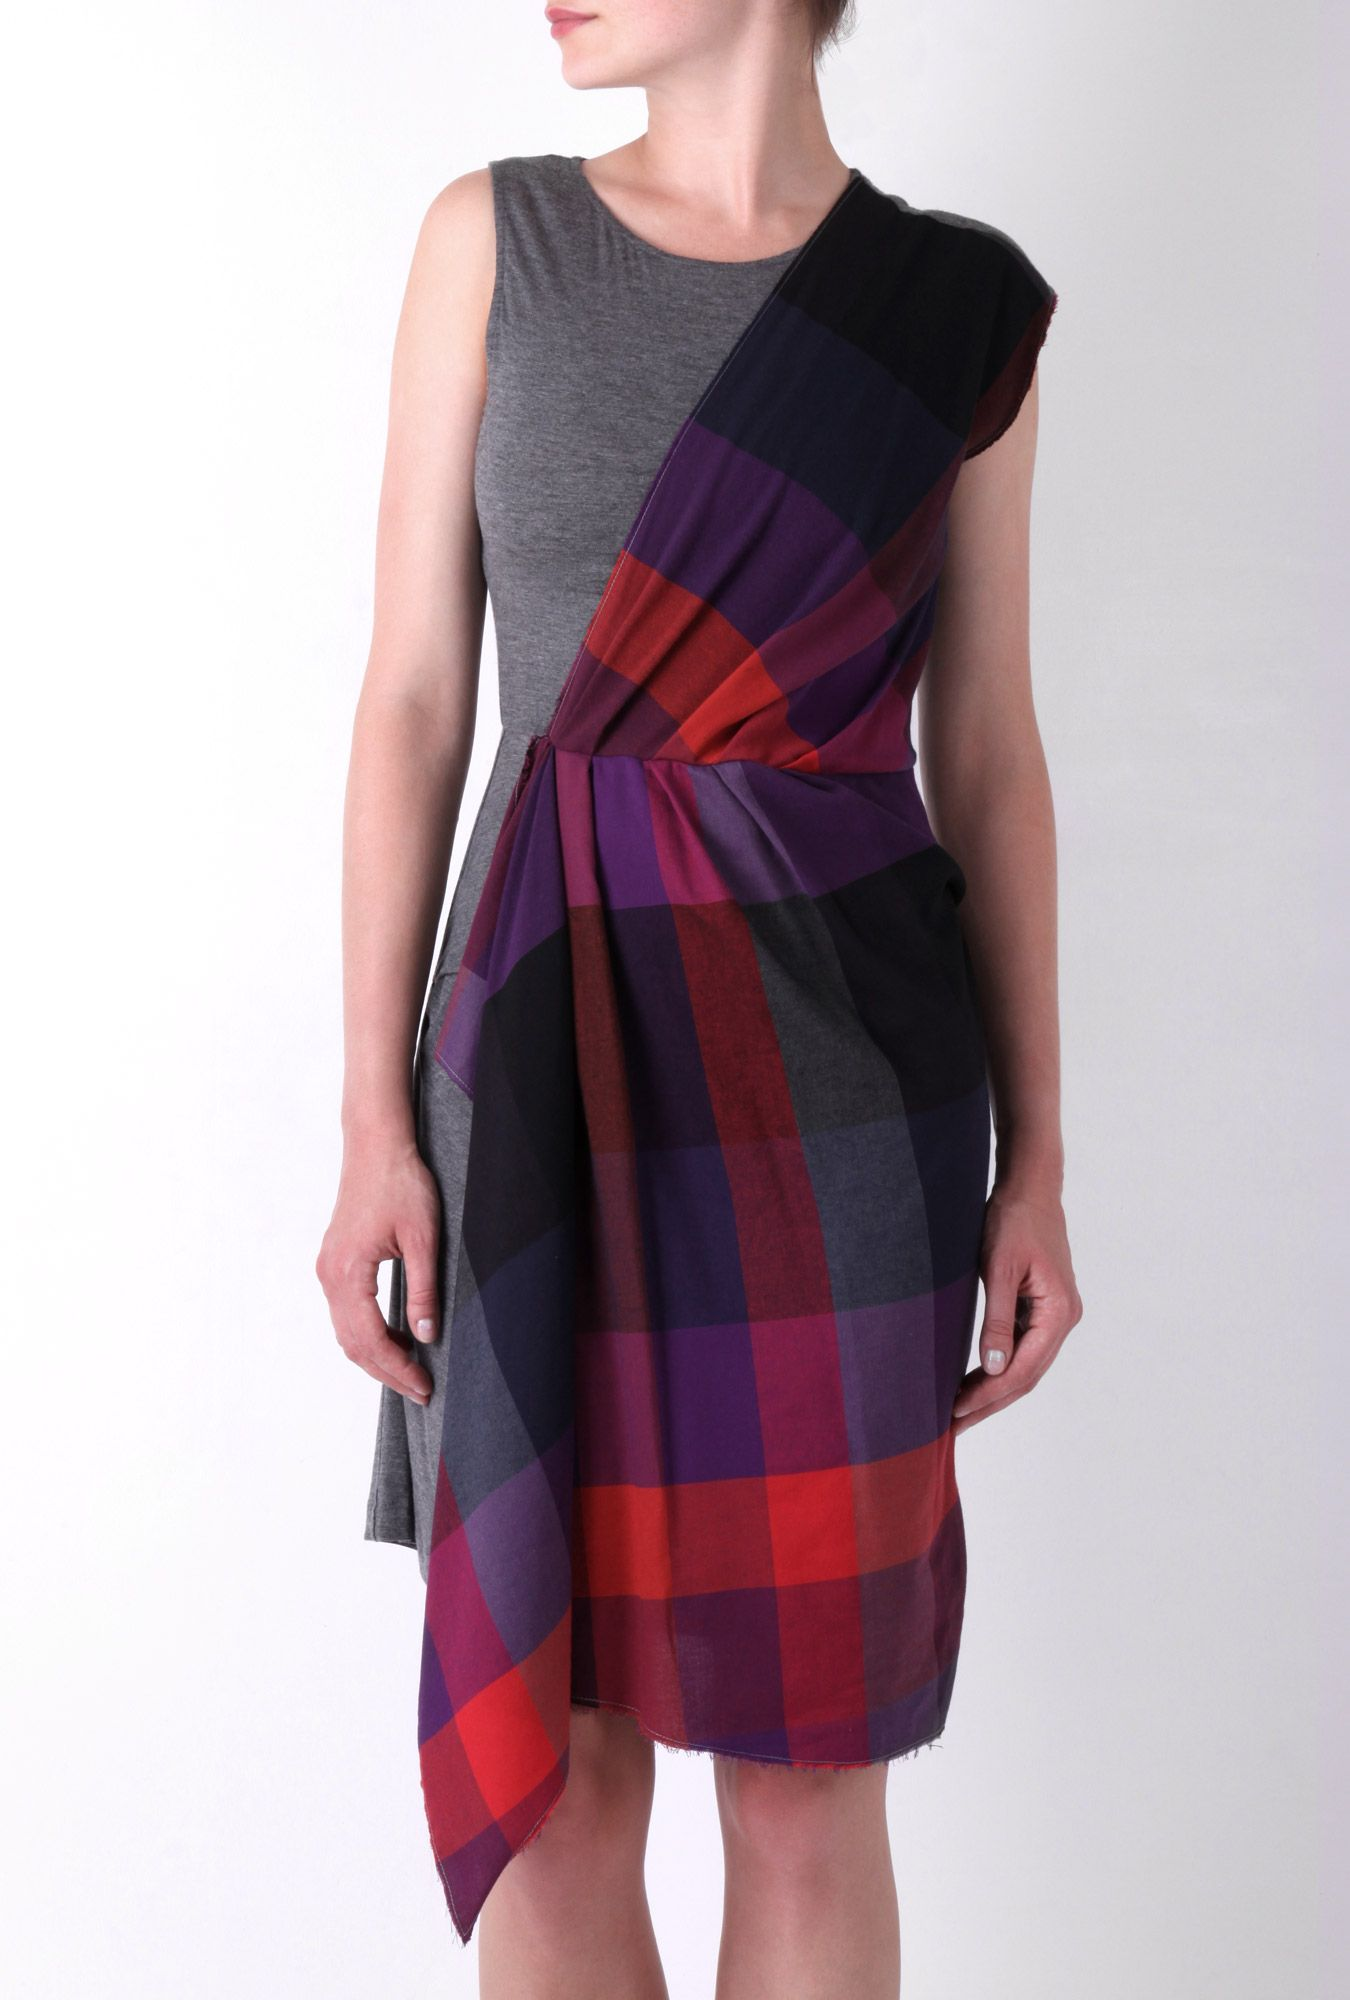 Tartan Drape Sleeveless Dress by McQ Alexander McQueen